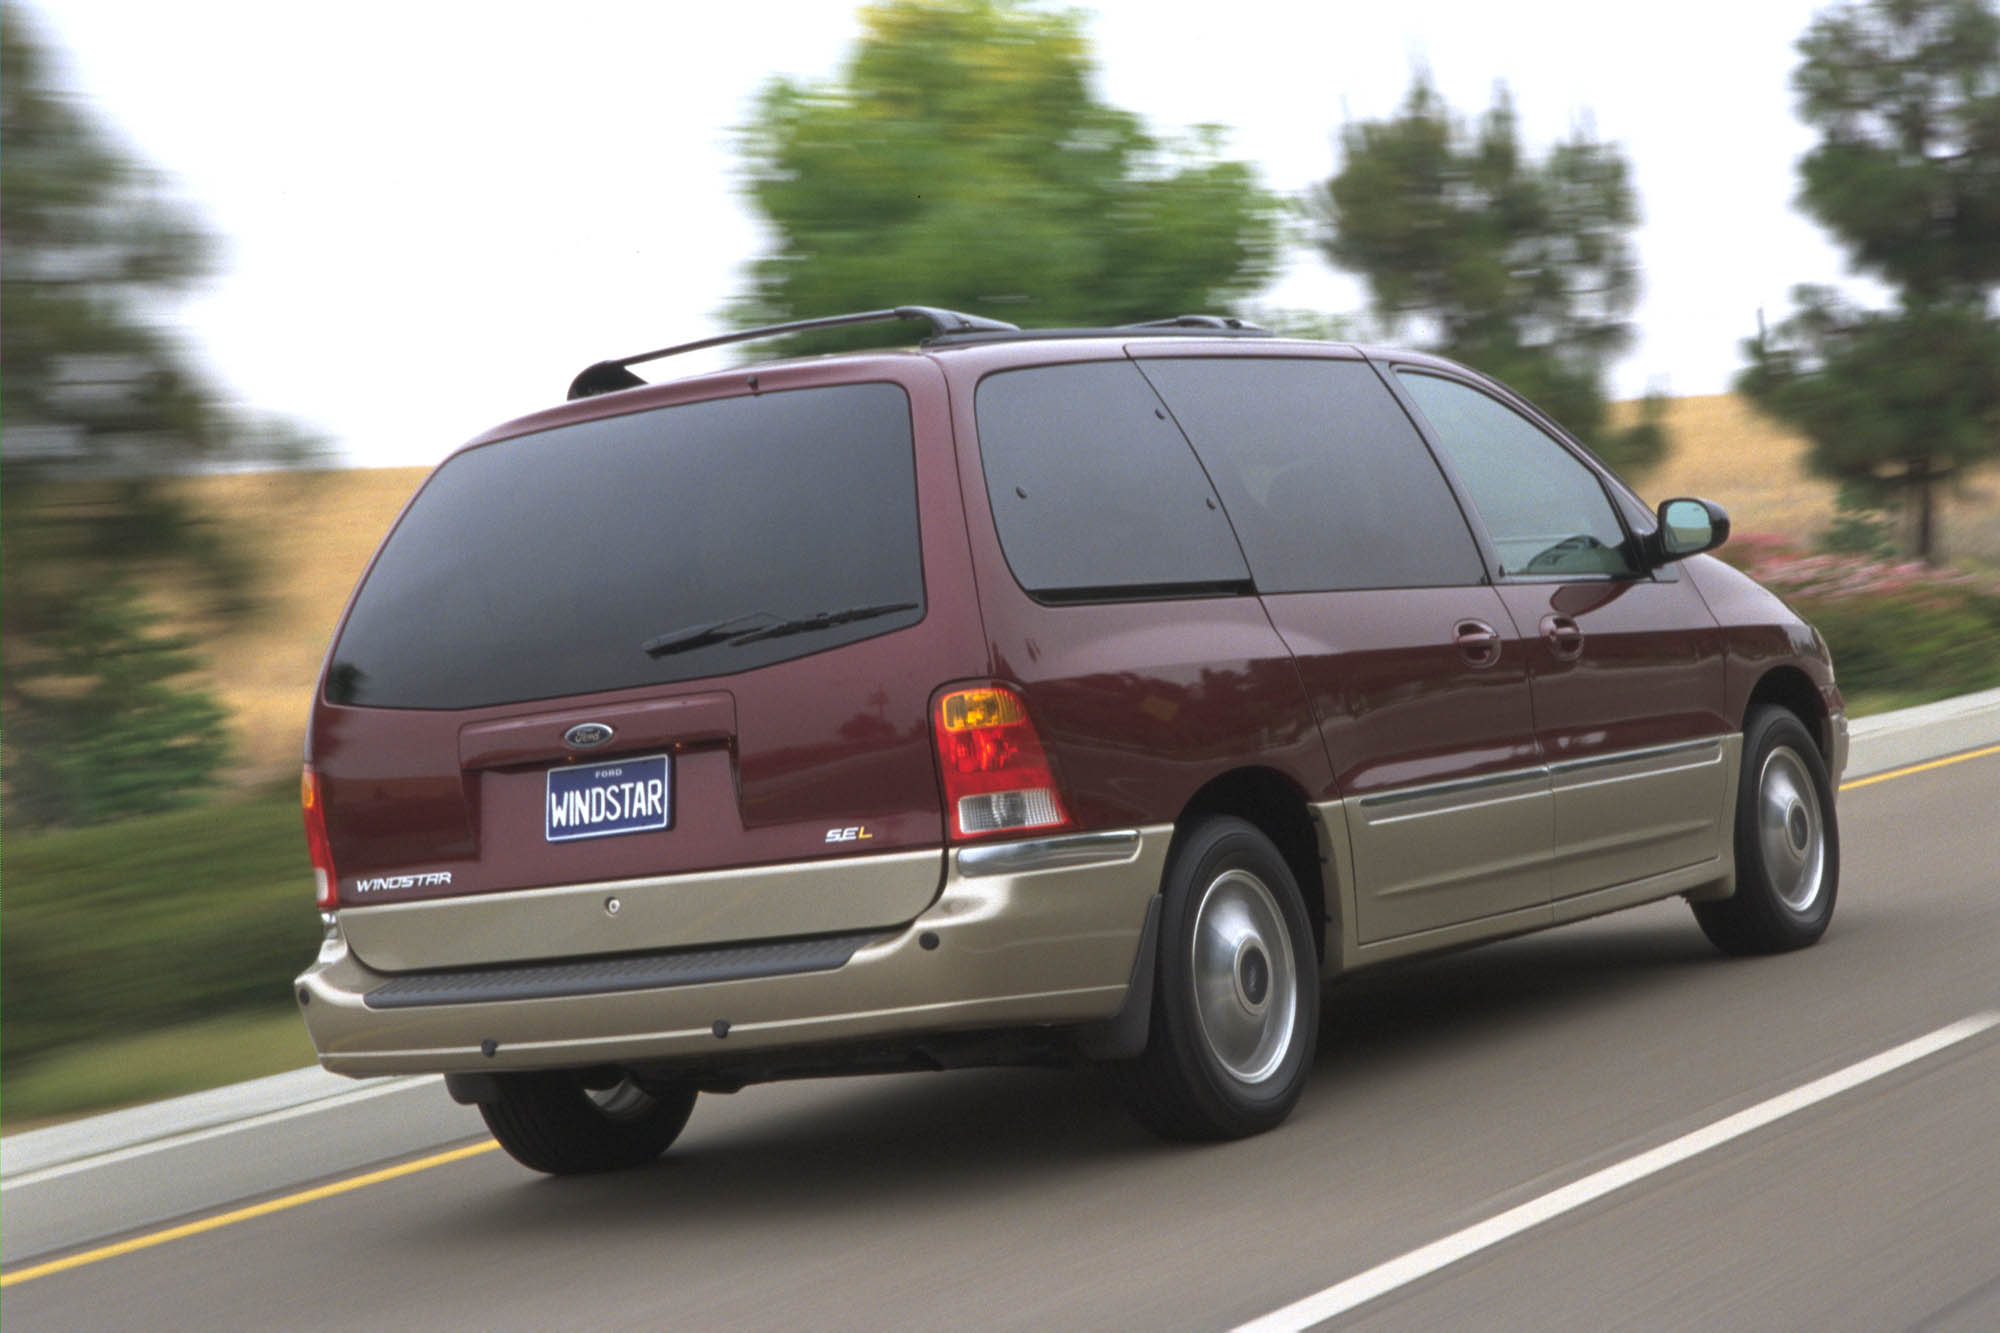 Ford windstar photo - 2